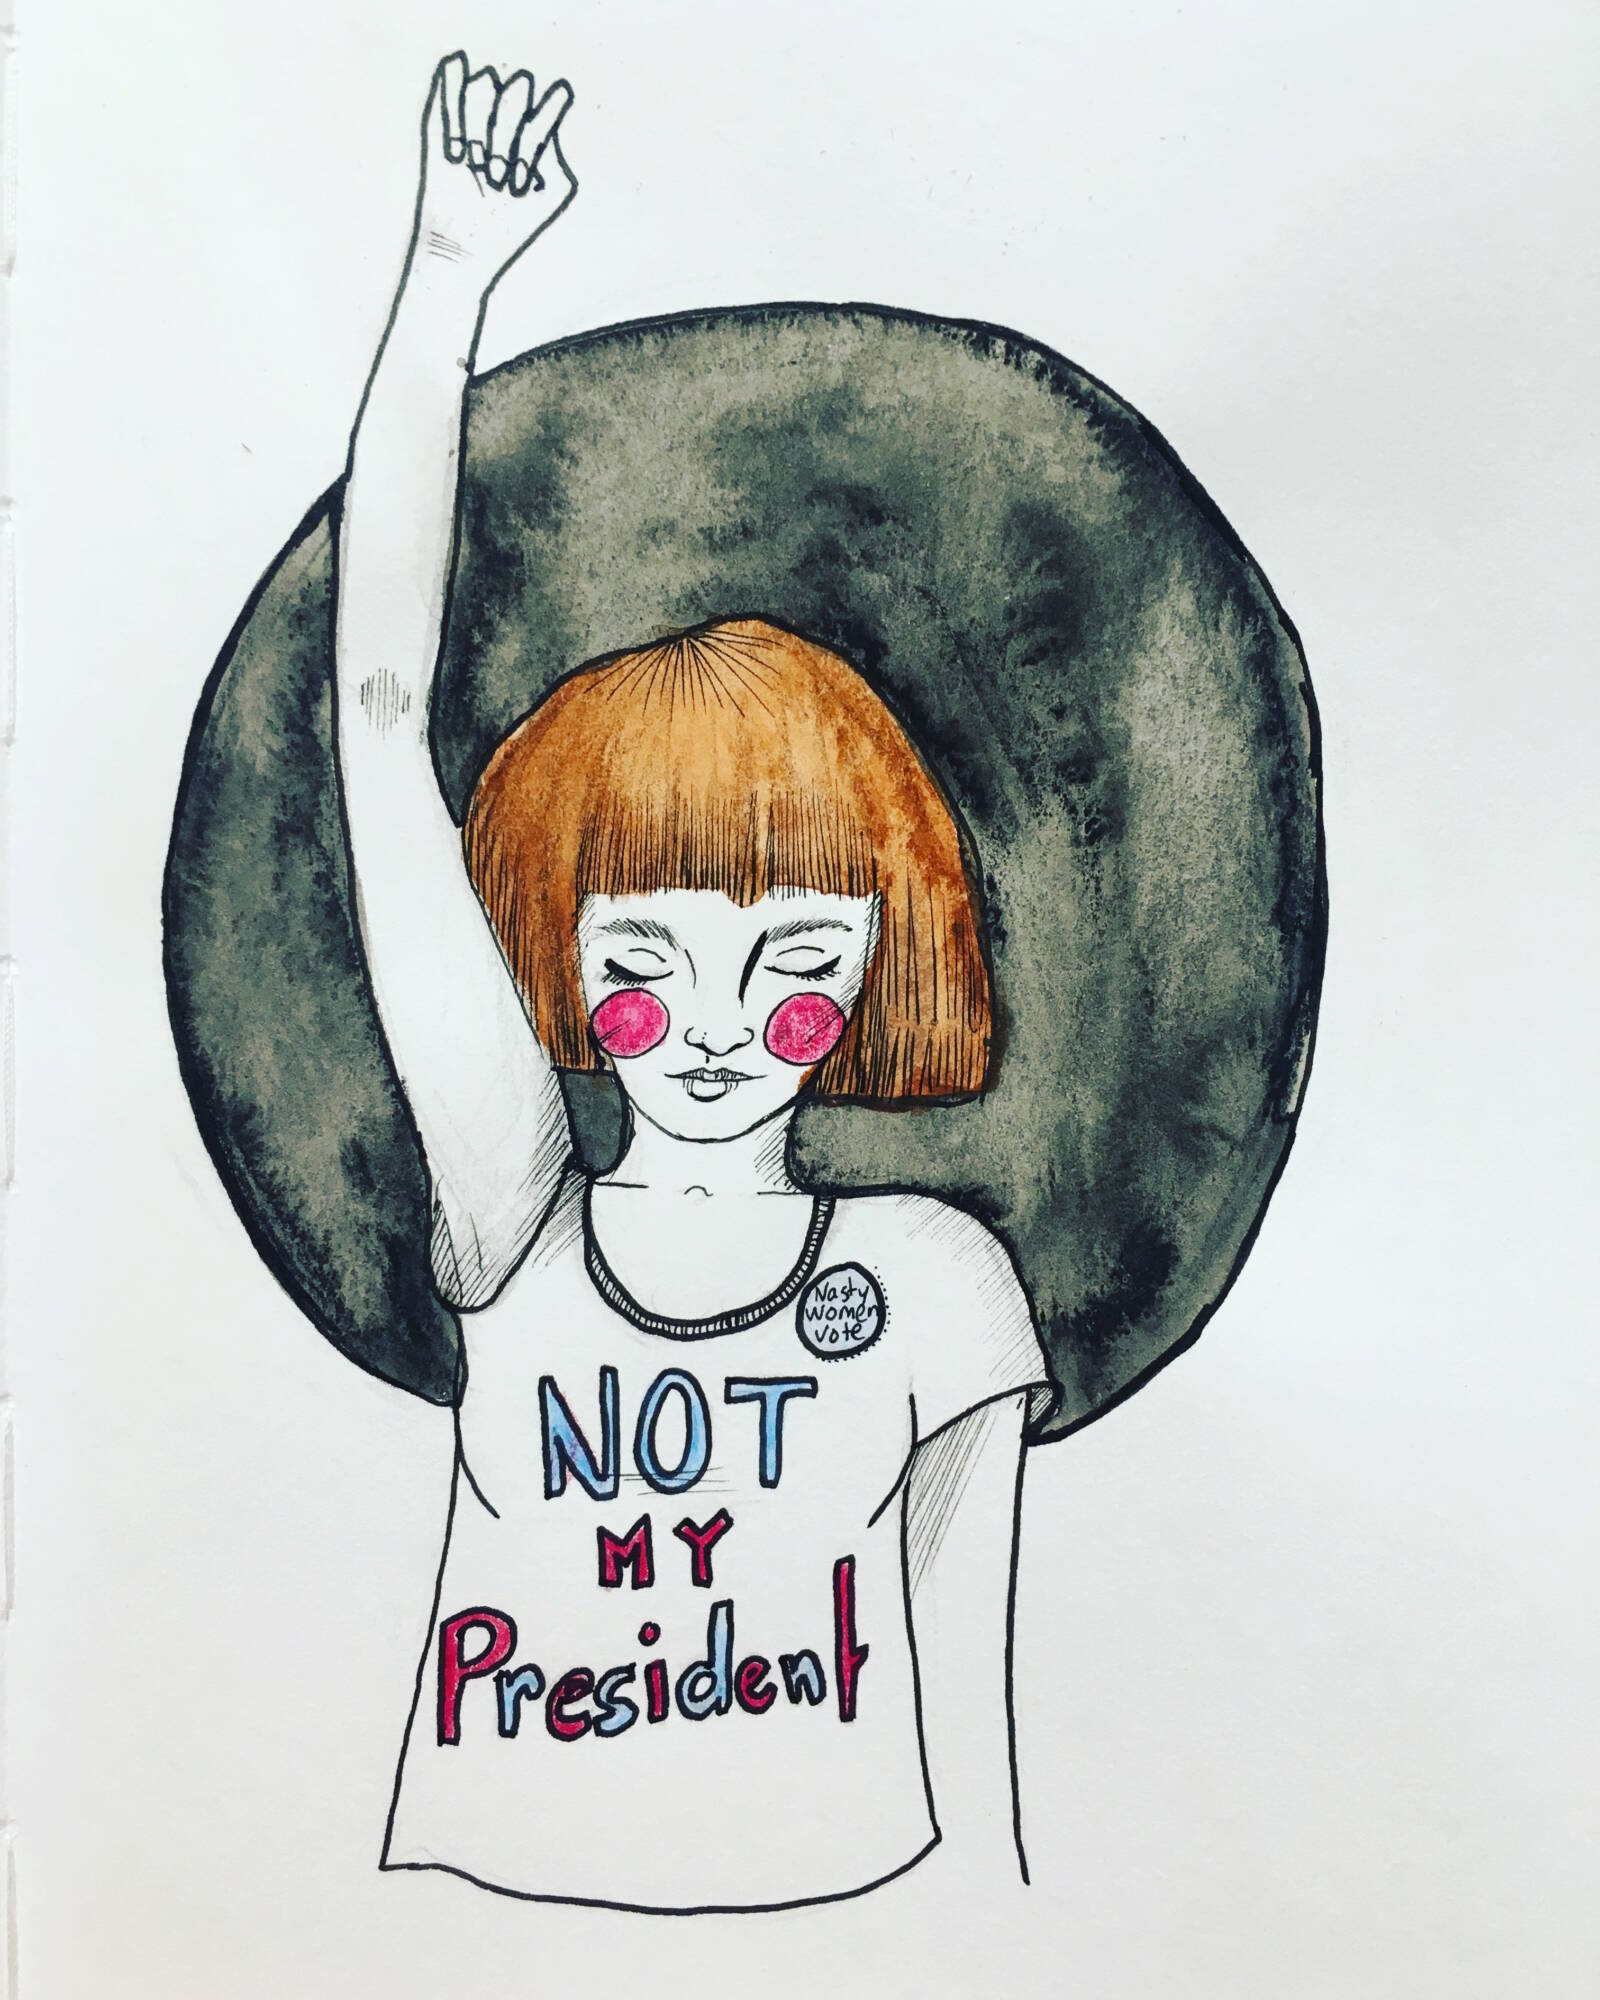 I Do Not Consent To President Trump